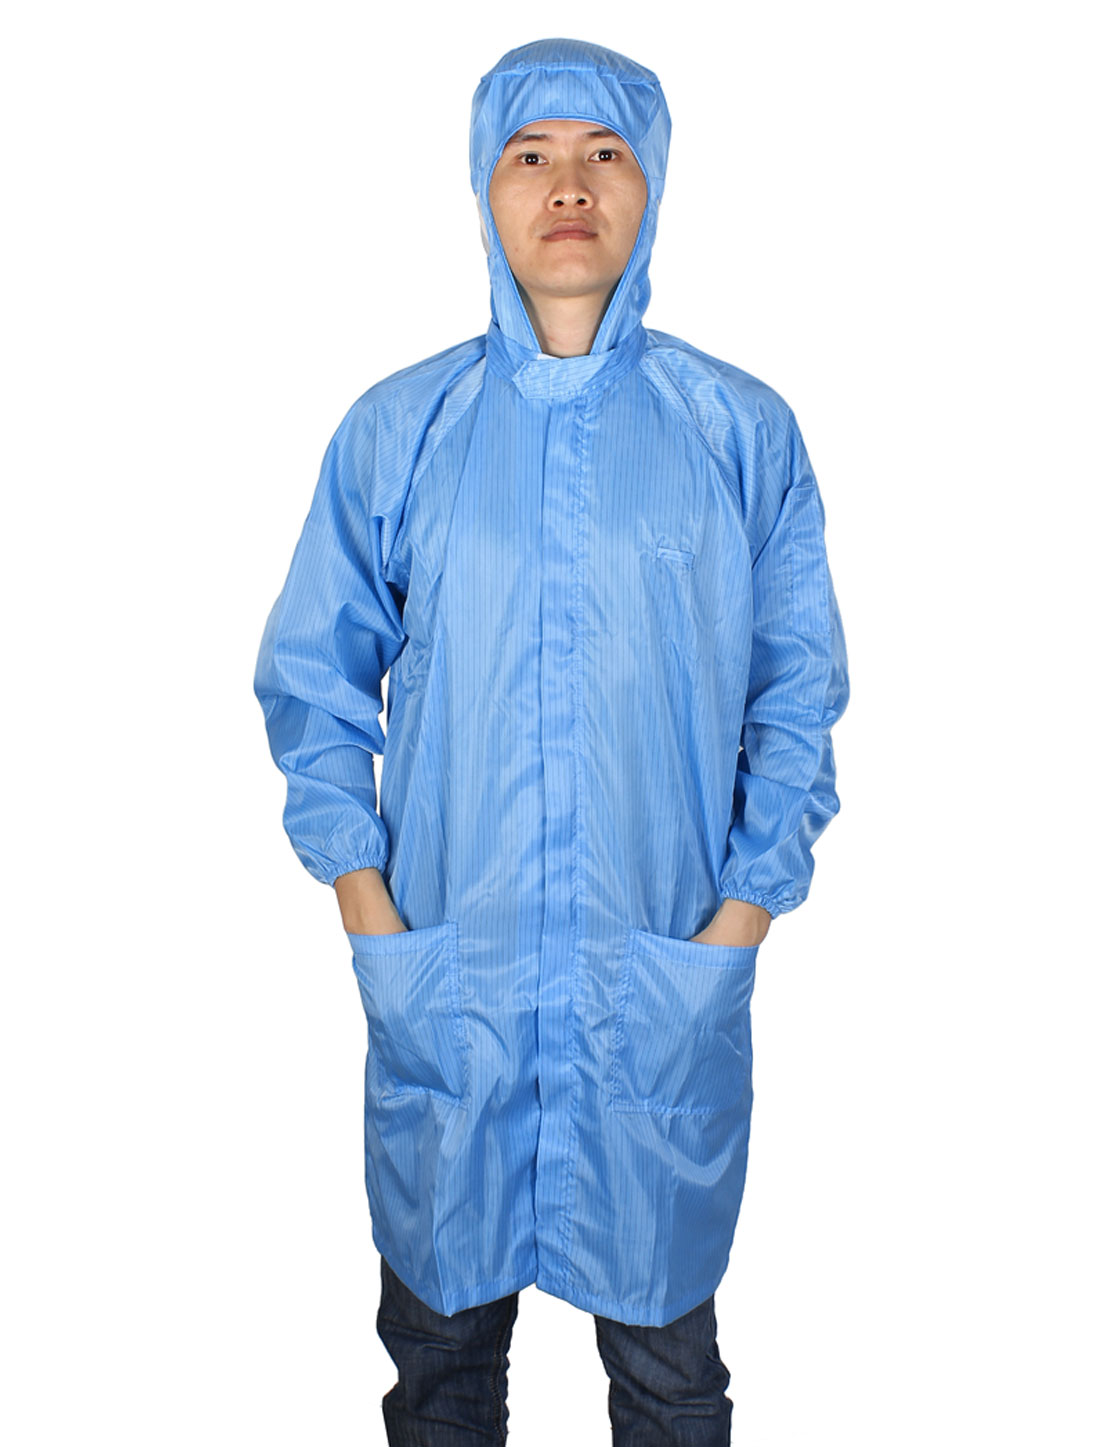 L Blue Zip Up Elastic Cuff ESD Lab Anti Static Coat Overalls Uniform for Unisex